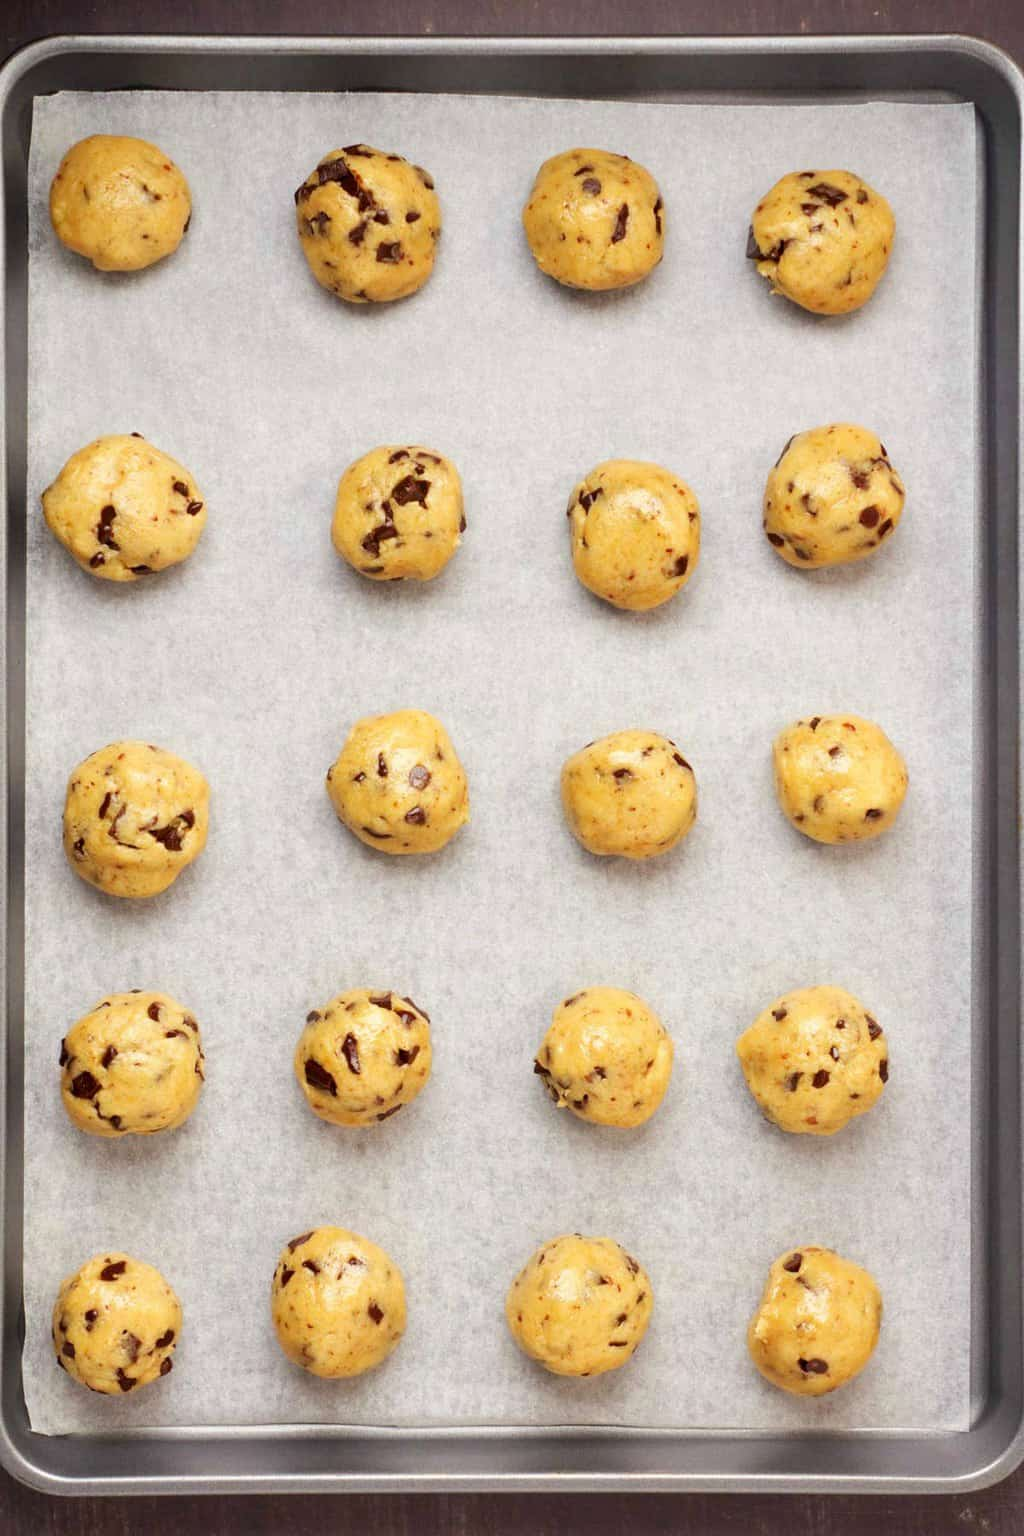 Vegan gluten free chocolate chip cookie dough rolled into balls on a parchment lined baking sheet.